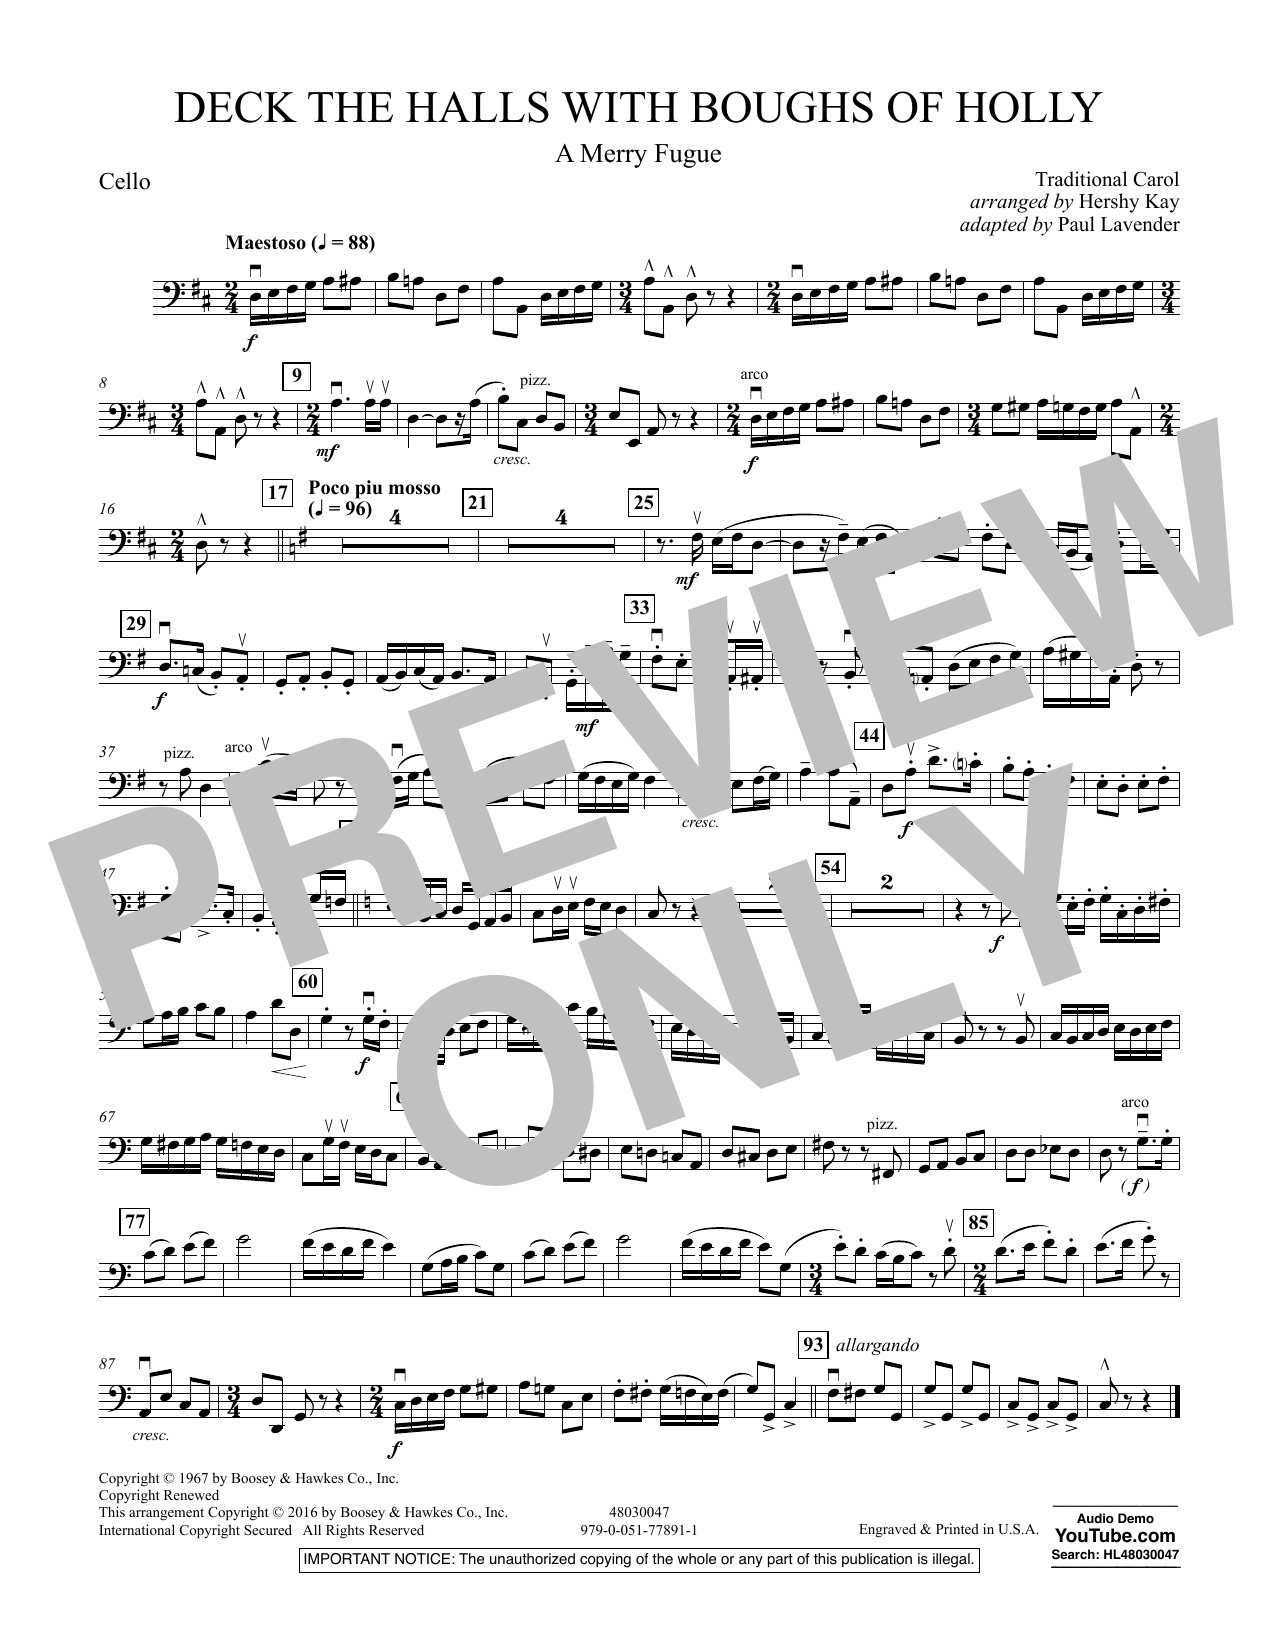 Deck the Halls with Boughs of Holly (A Merry Fugue) - Cello